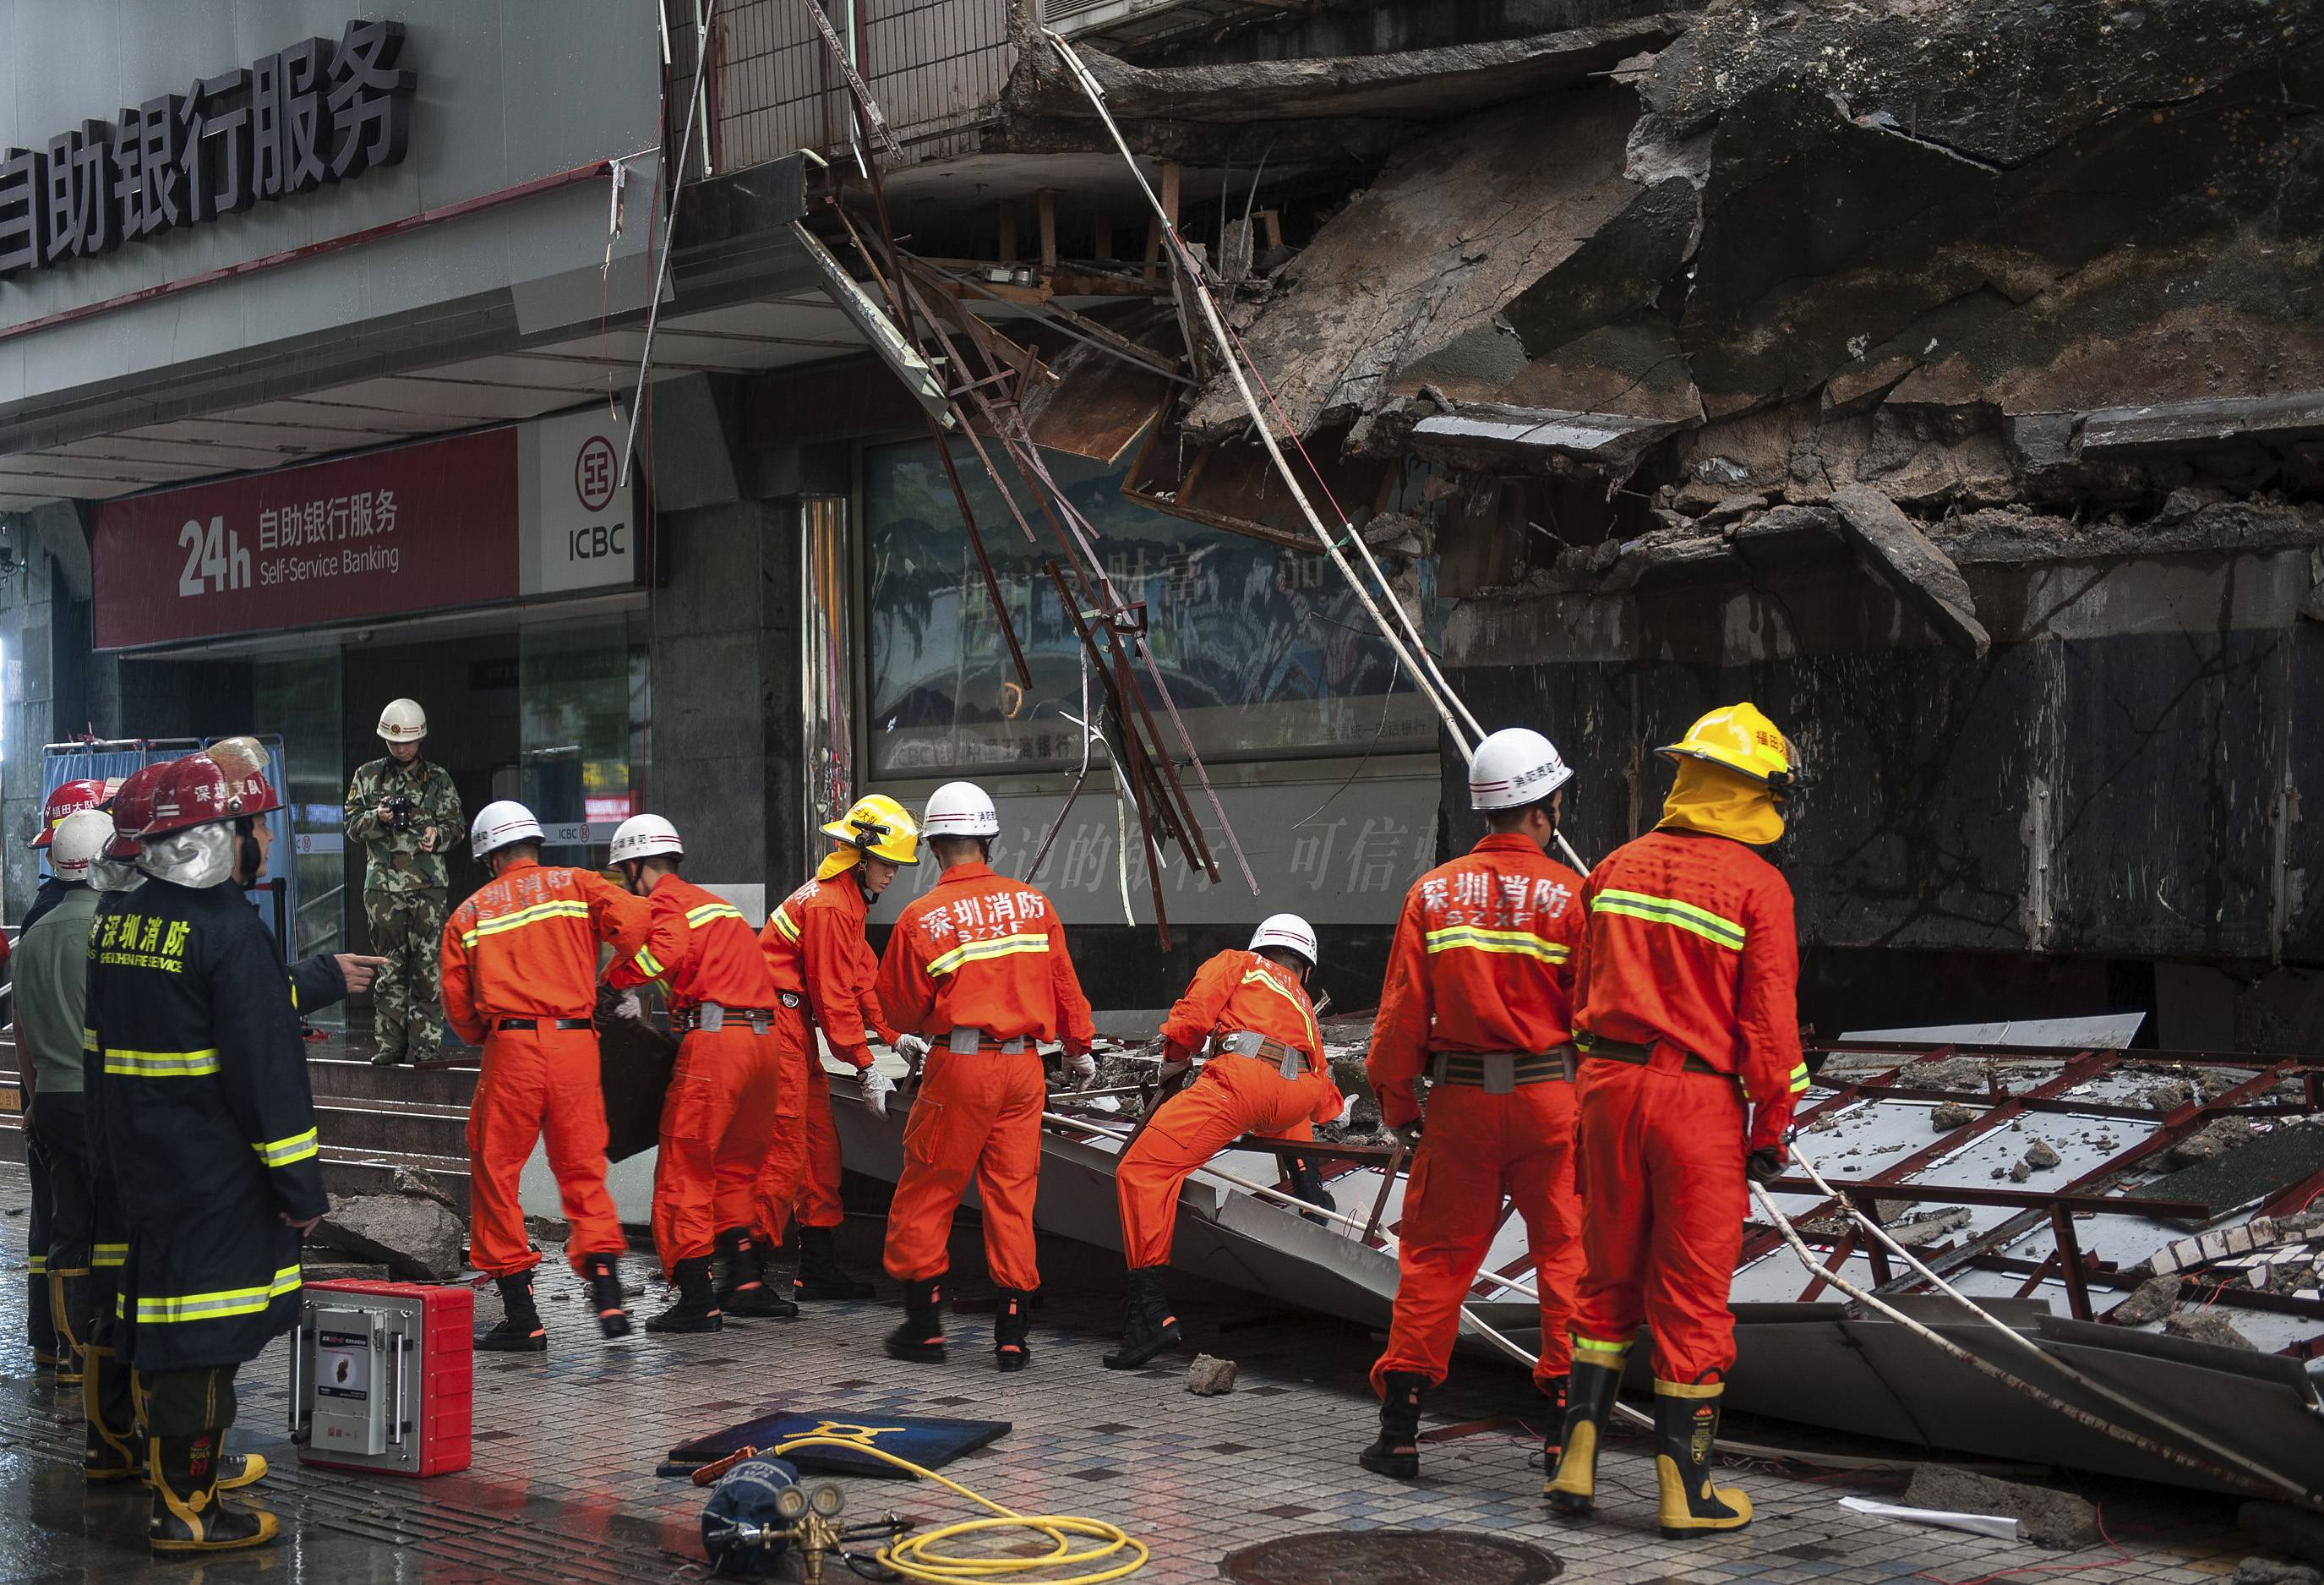 Rescuers try to remove a steal frame from a collapsed concrete roof which has killed and injured a number of people after they took shelter during heavy rains in Shenzhen in south China's Guangdong province Friday, July 18, 2014. A powerful typhoon hit the southern Chinese island of Hainan on Friday after killing tens people in the Philippines.